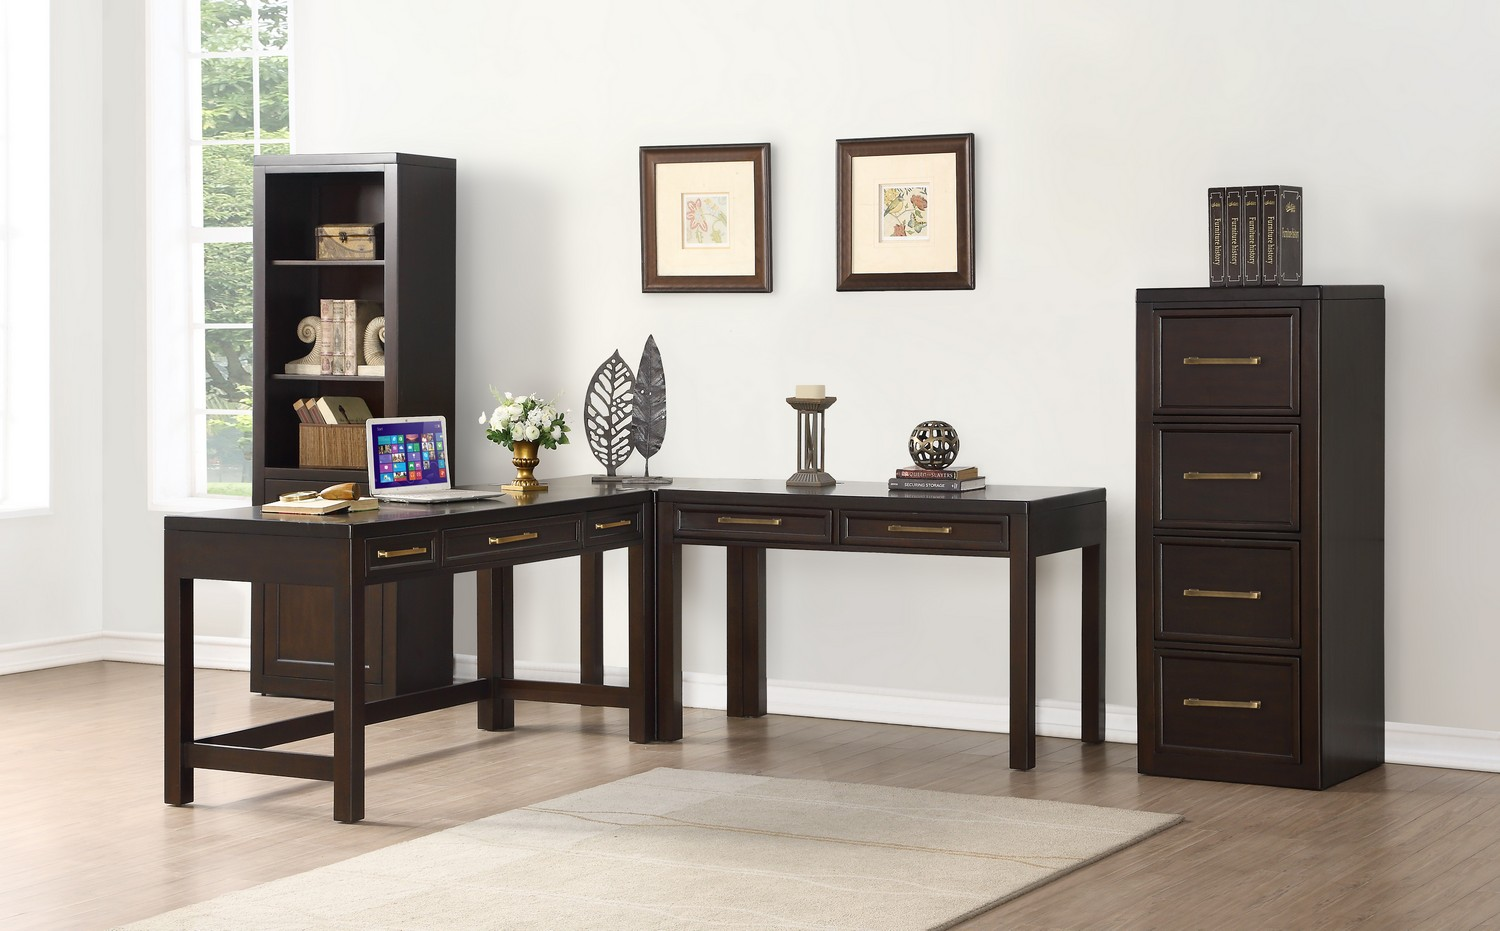 Parker House Greenwich Home Office Set 4 - Dark Walnut